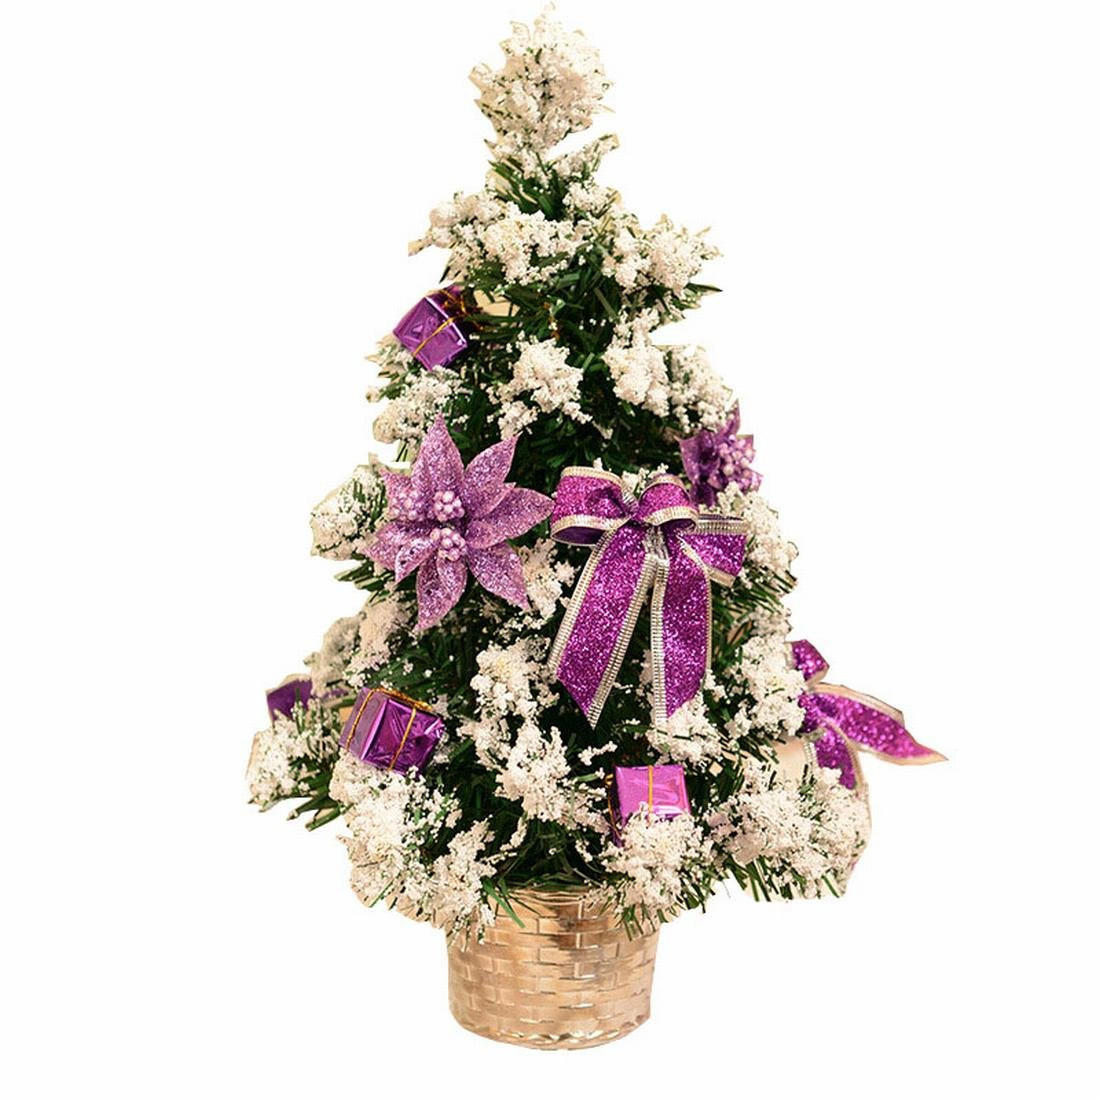 Small Artificial Christmas Tree Decorated Gife Red Berries Ornaments - 16'' Tall Tabletop (Red) (Purple)